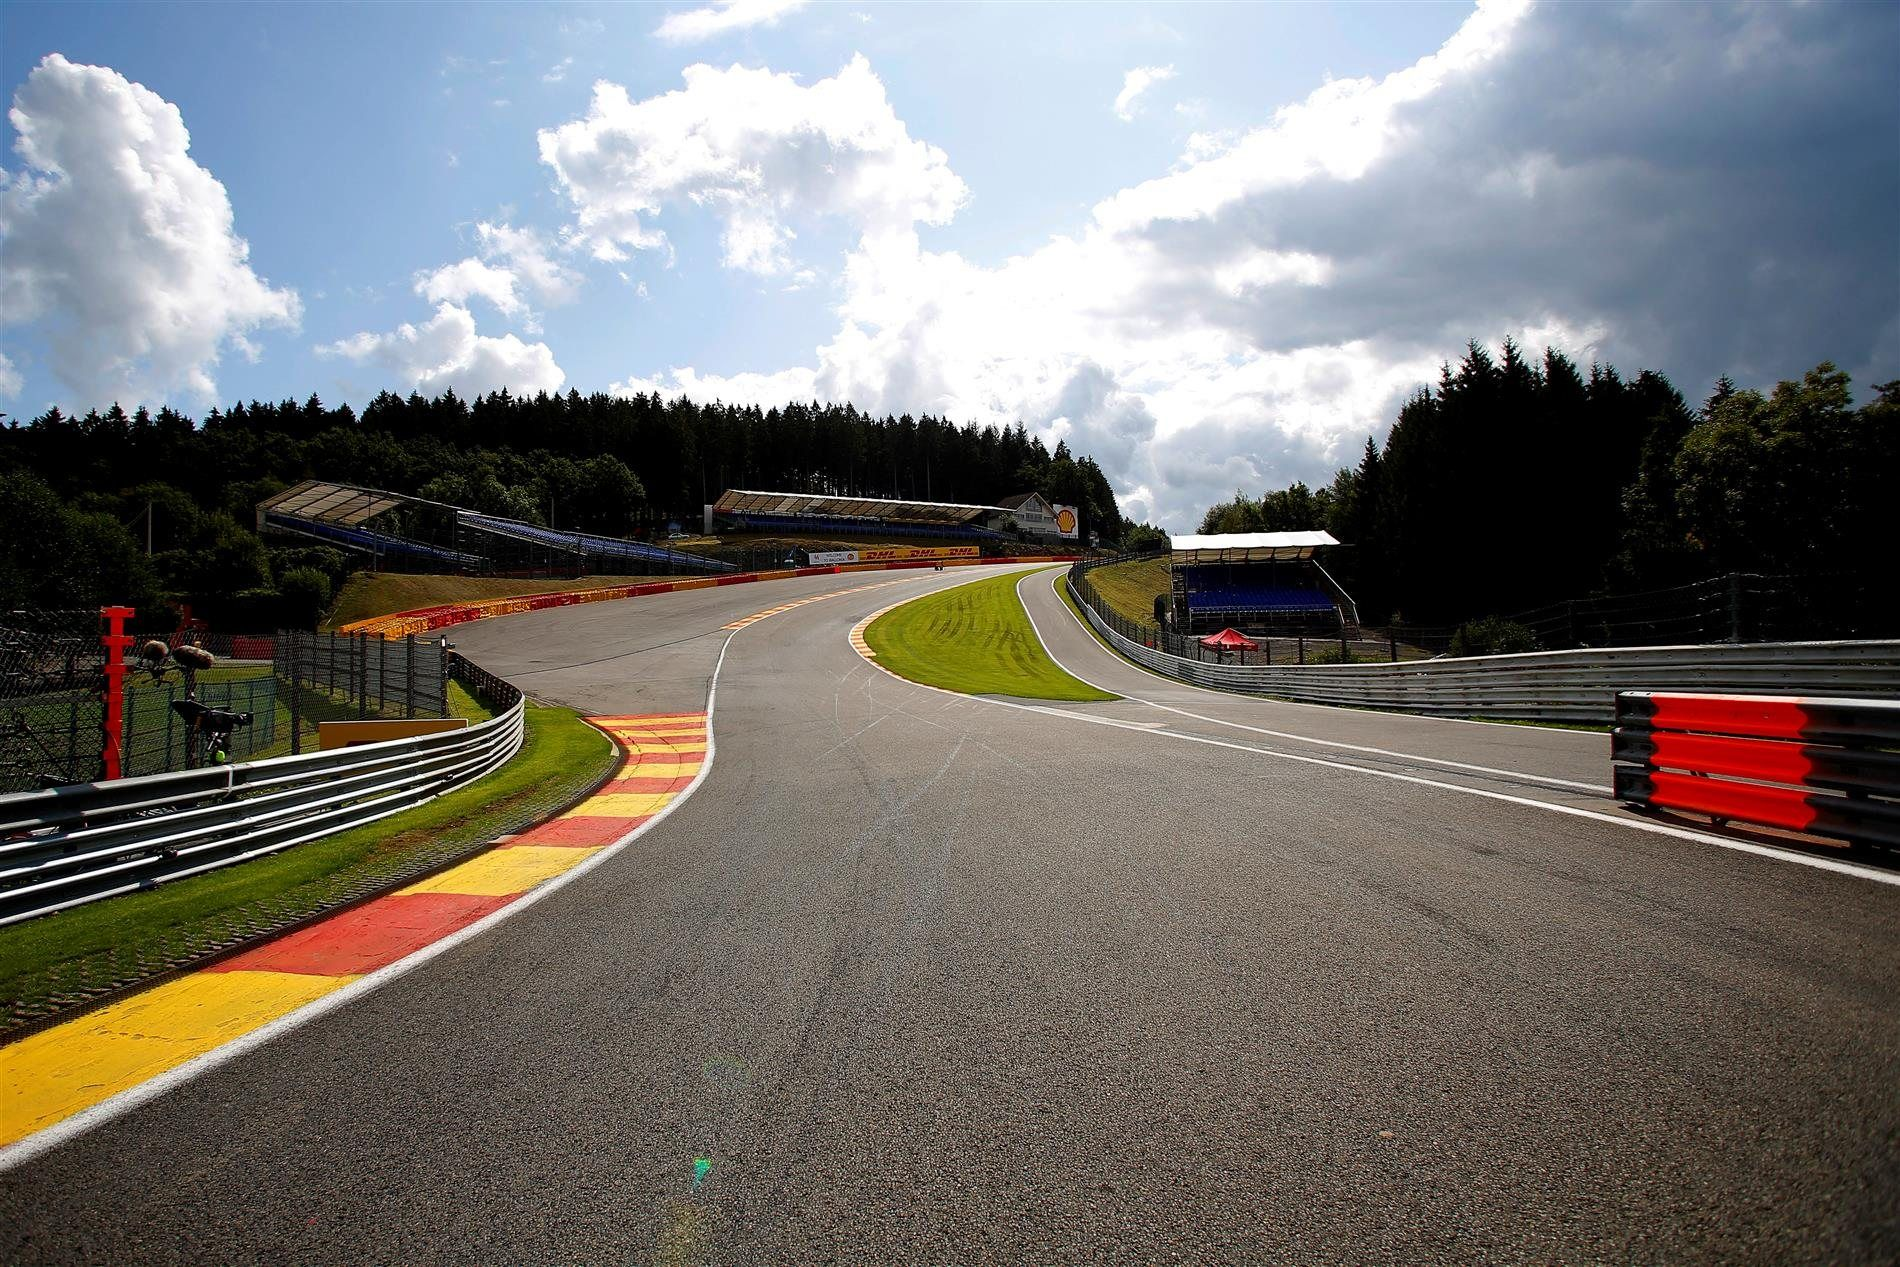 eau rouge spa francorchamps circuit belgium f1 pinterest circuits and f1. Black Bedroom Furniture Sets. Home Design Ideas